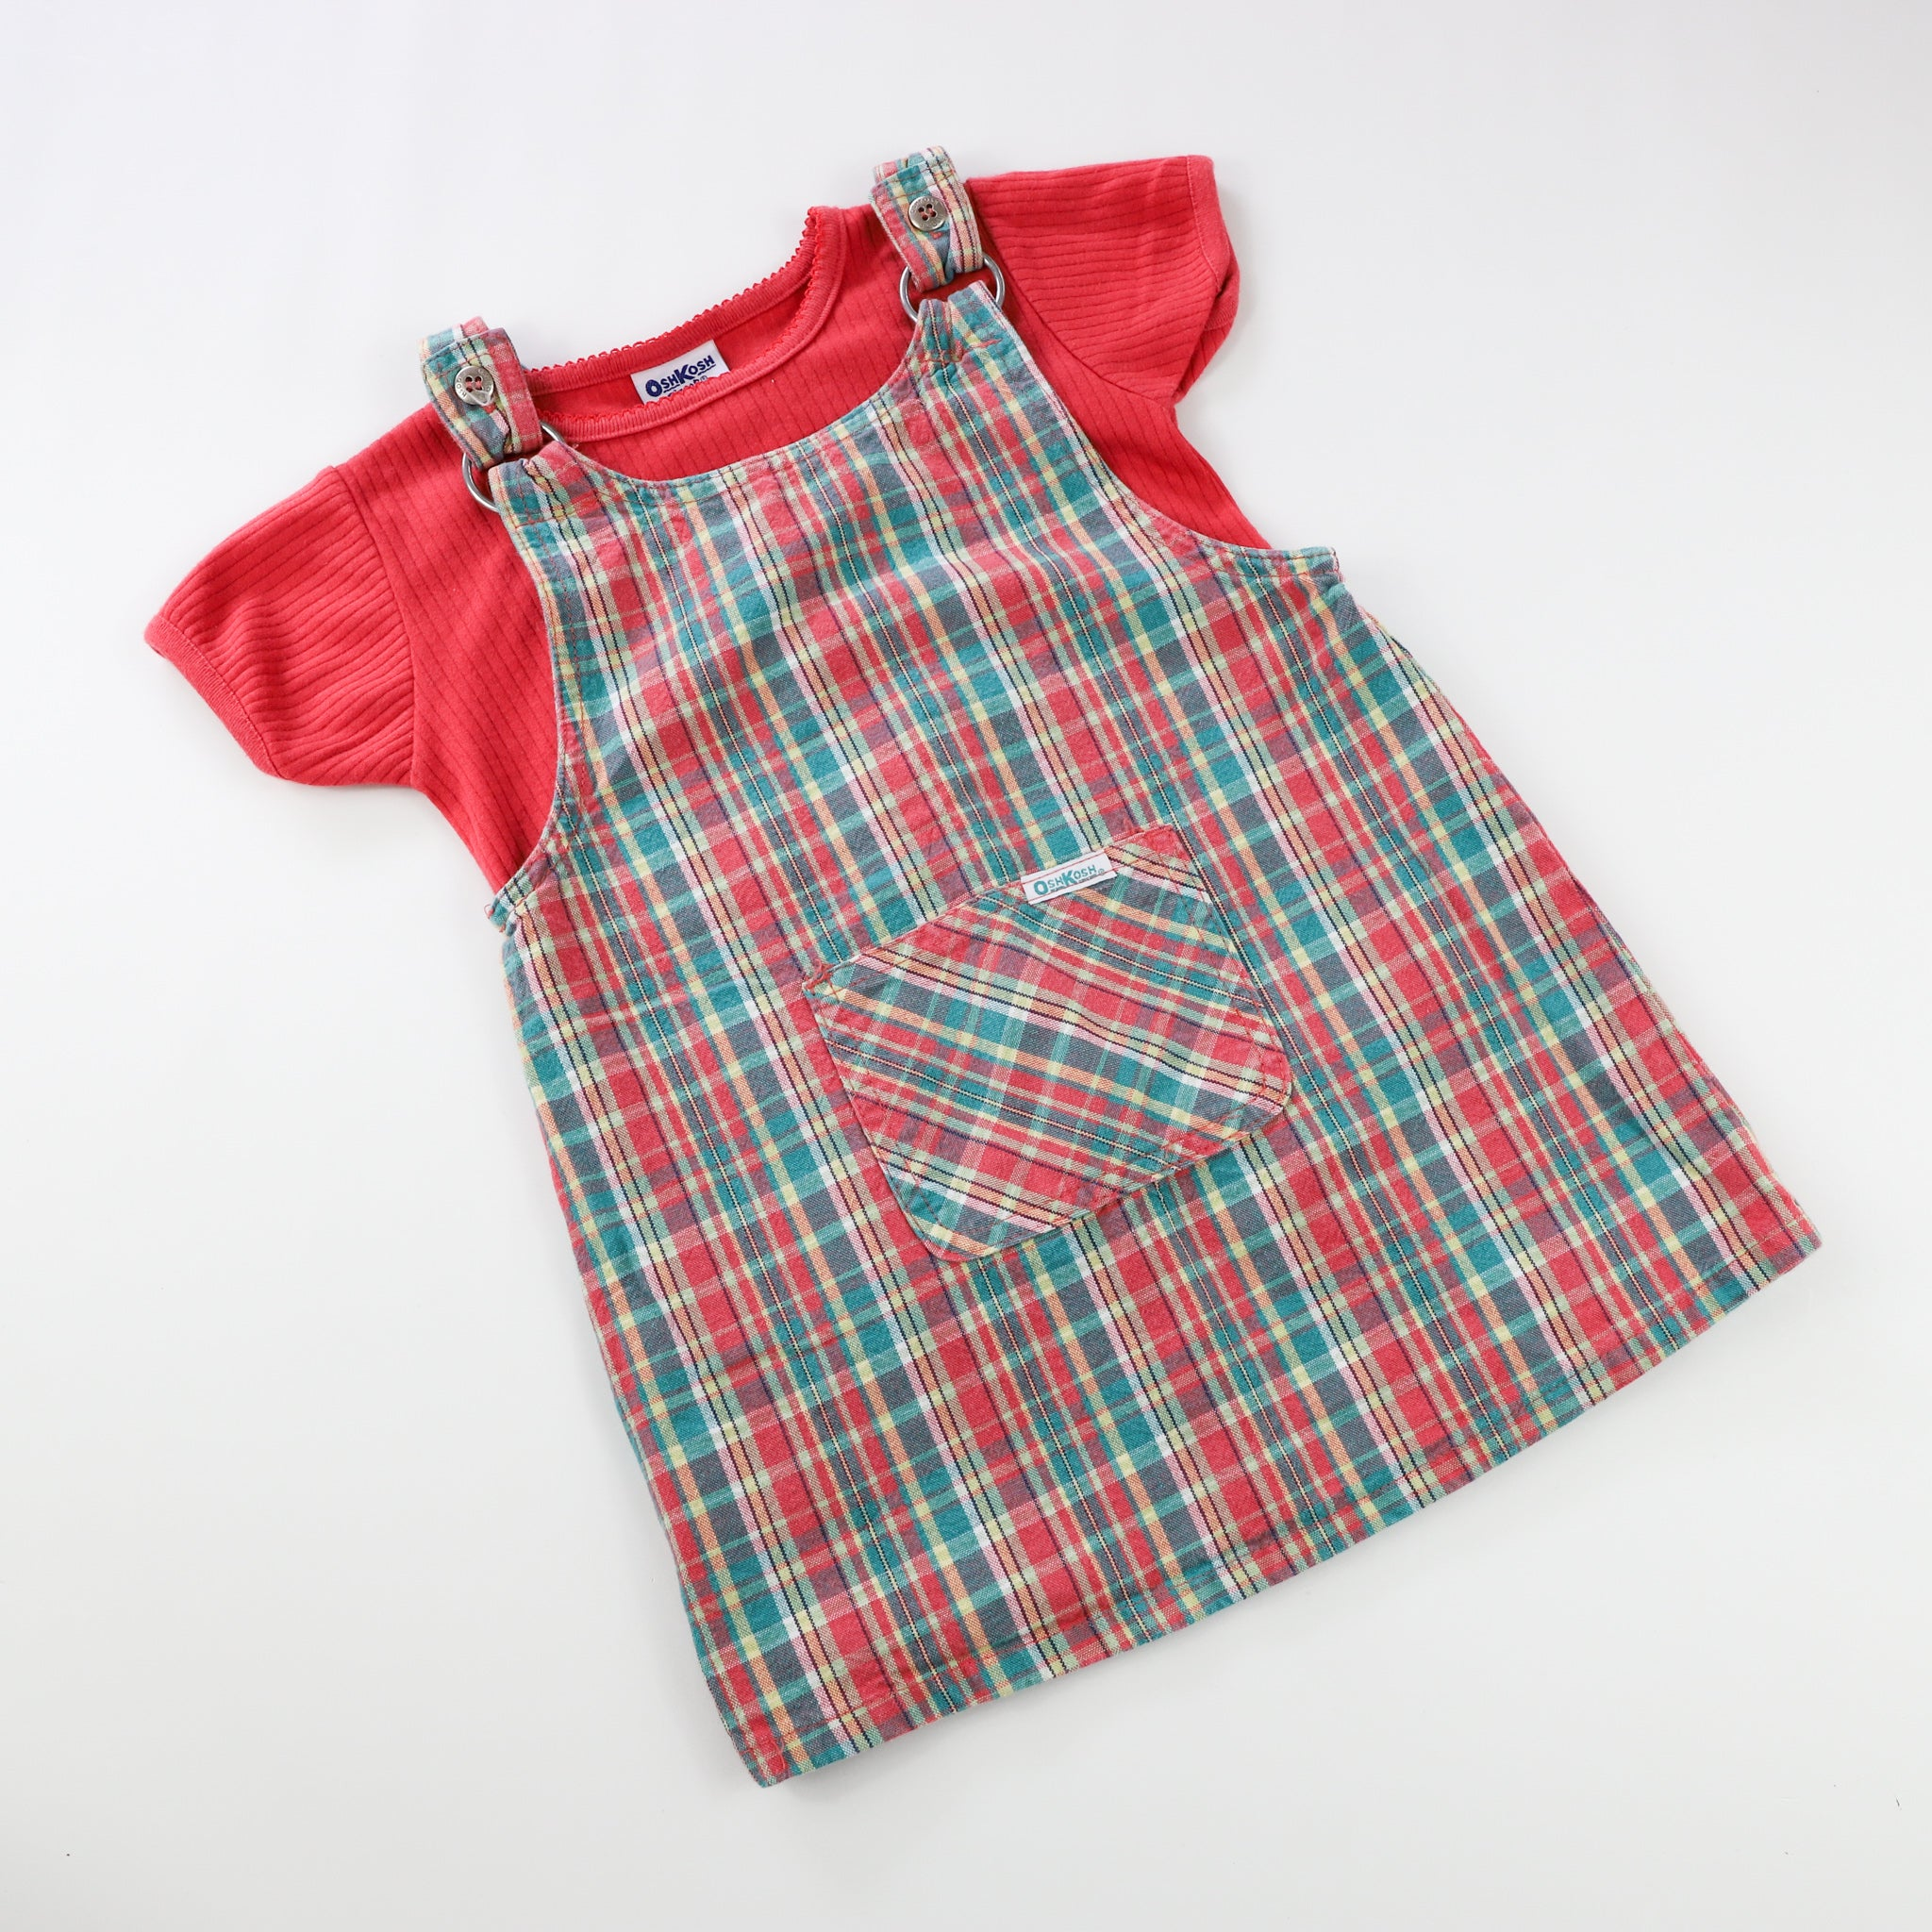 Vintage OshKosh Plaid Dress Size 4T